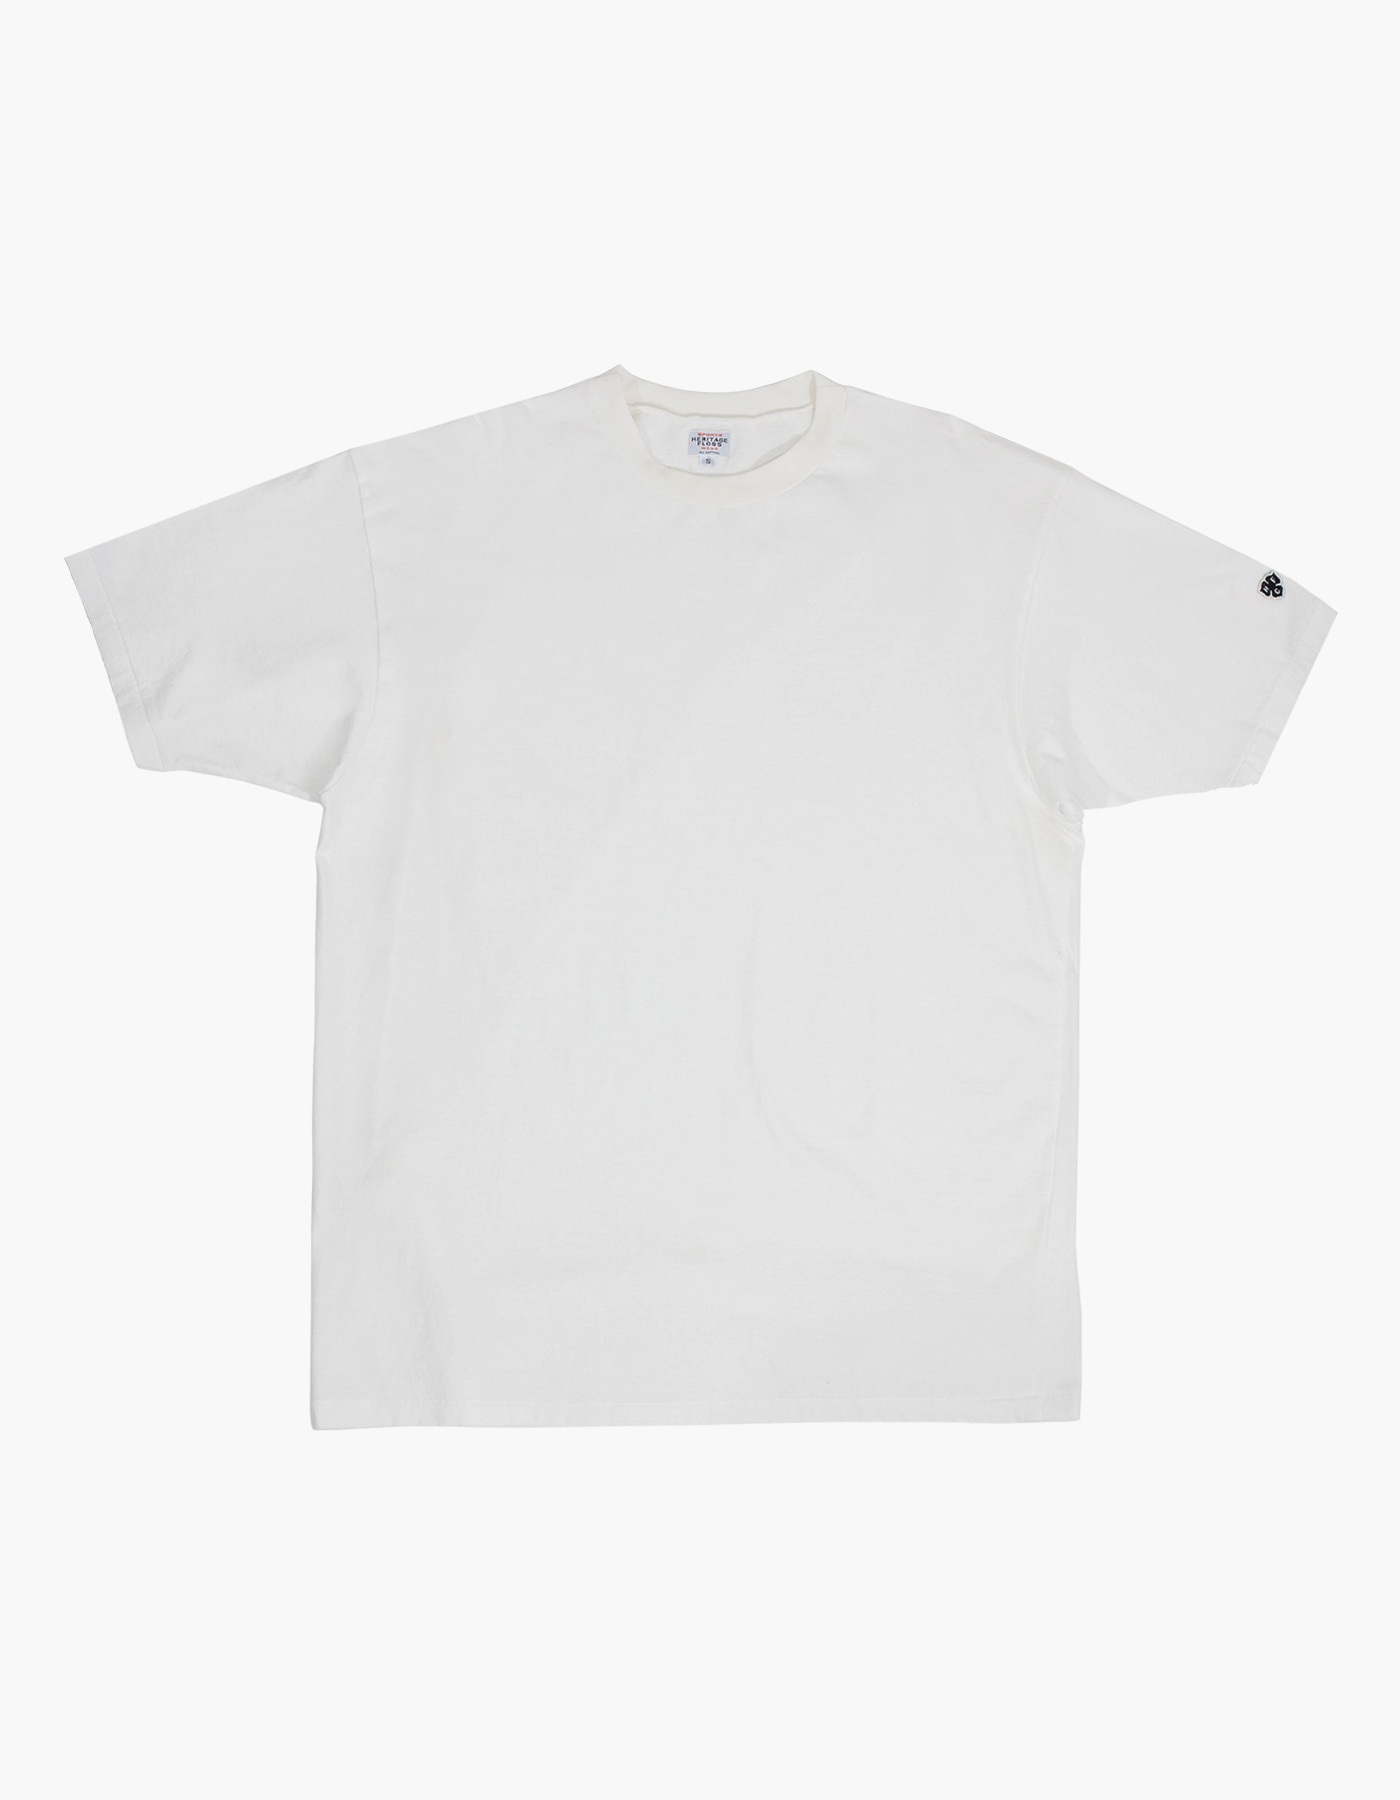 PIGMENT COMPACT YARN T-SHIRTS / WHITE